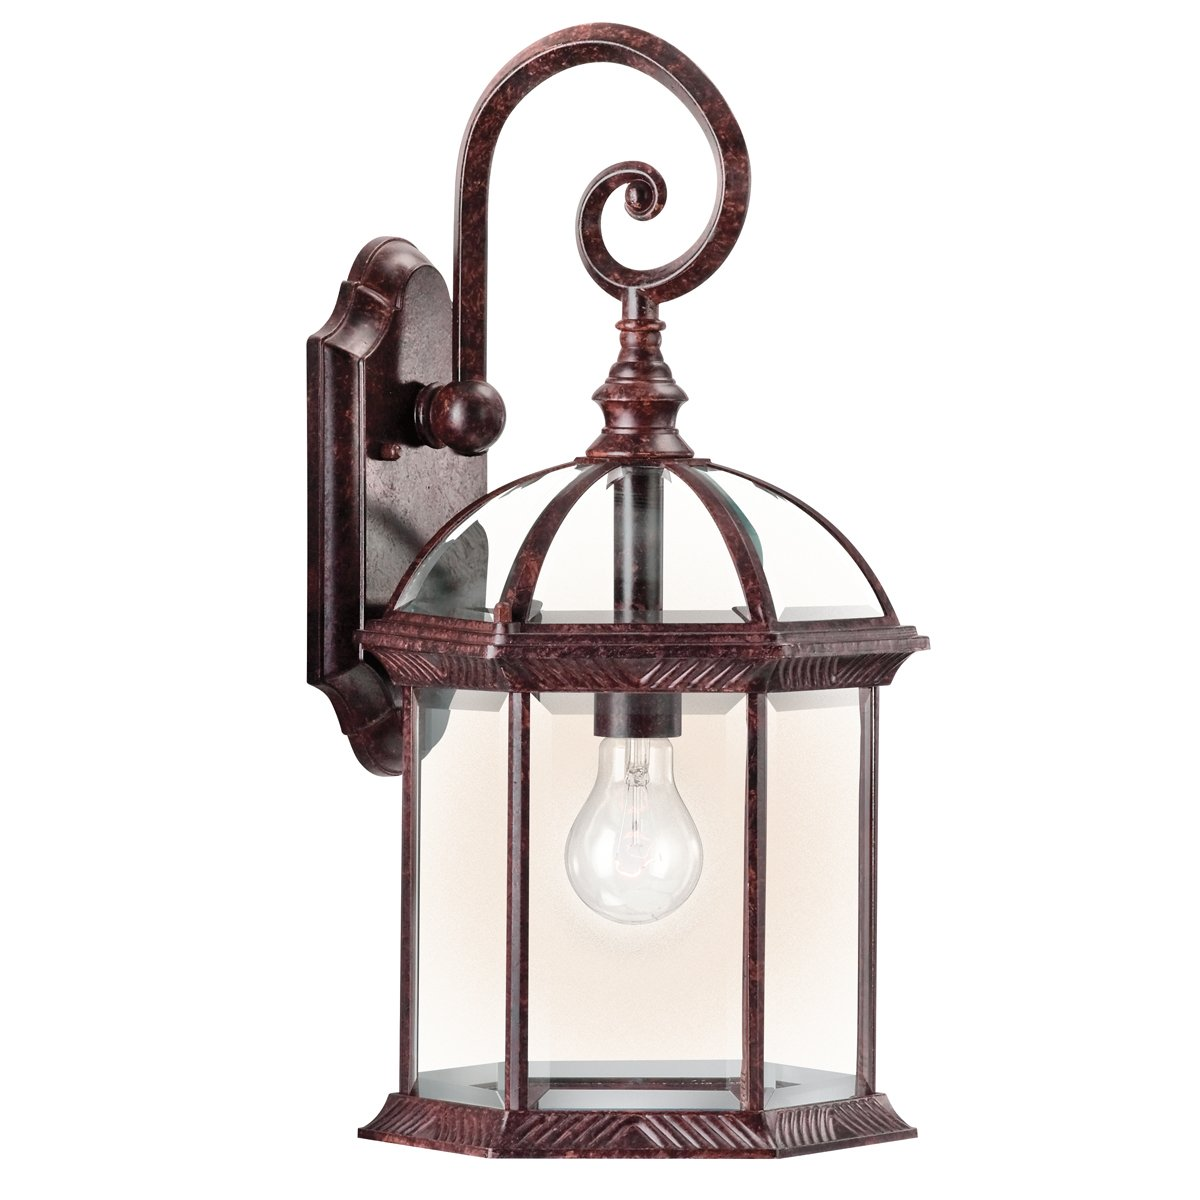 Outdoor led wall lantern olde bronze wall porch lights amazon com - Kichler 9735tz Barrie 1 Light Outdoor Wall Lantern Tannery Bronze Wall Porch Lights Amazon Com